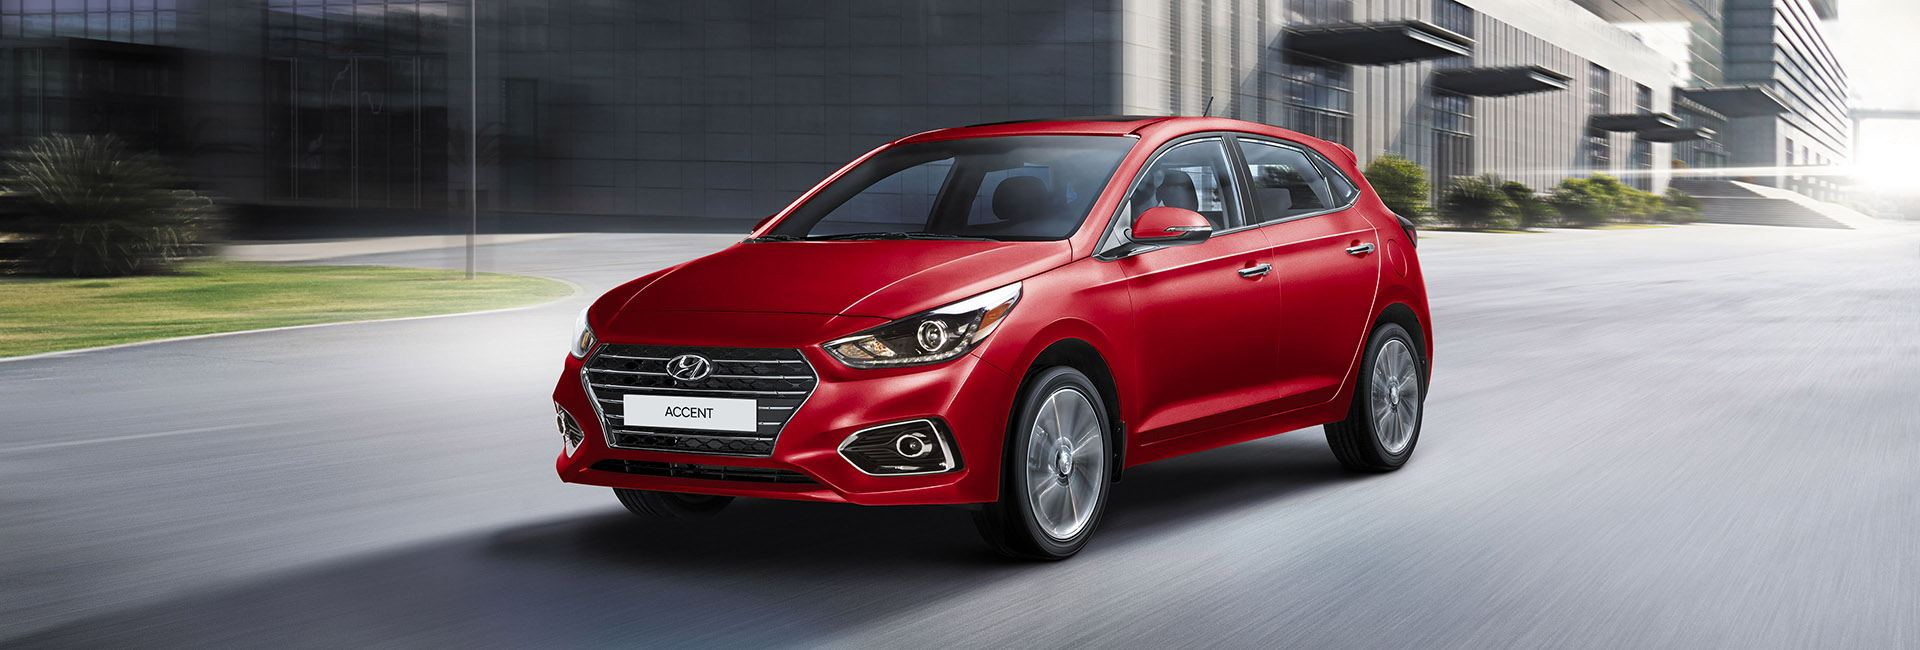 Find the 2020 Accent at Pathway Hyundai in Orleans, ON